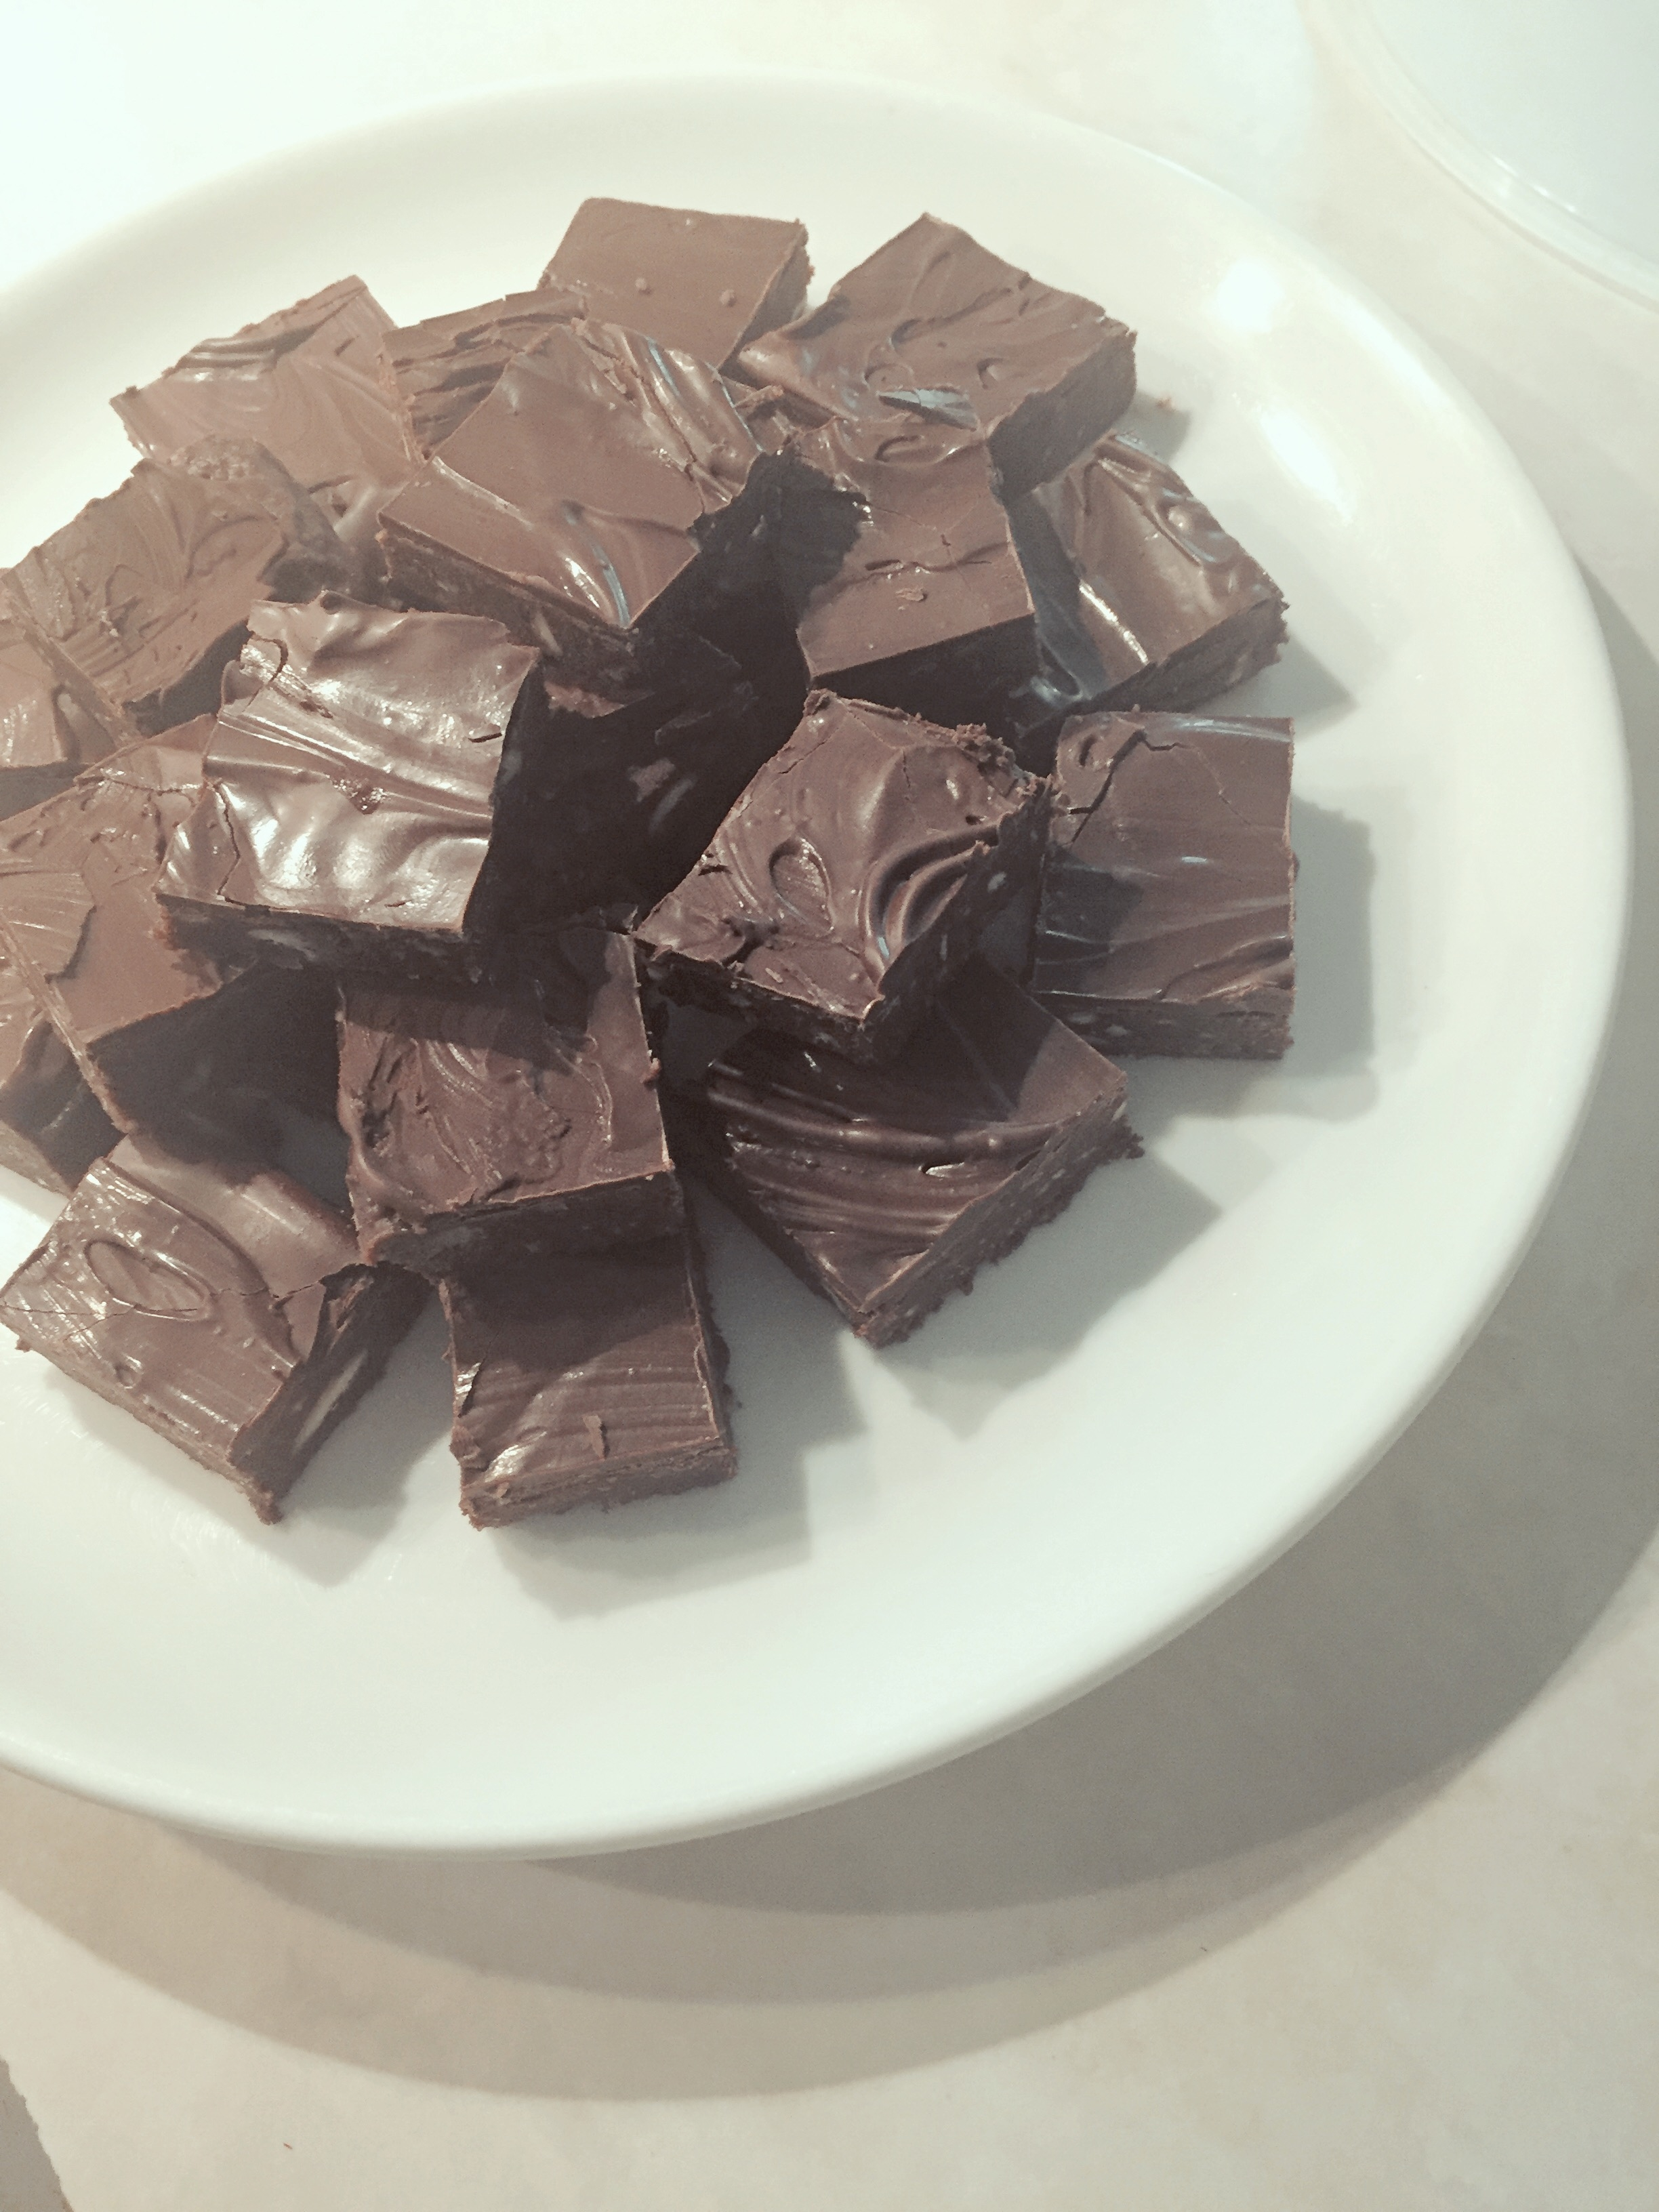 http://acbowperb.se/for-women/fudge-recept-leila.php